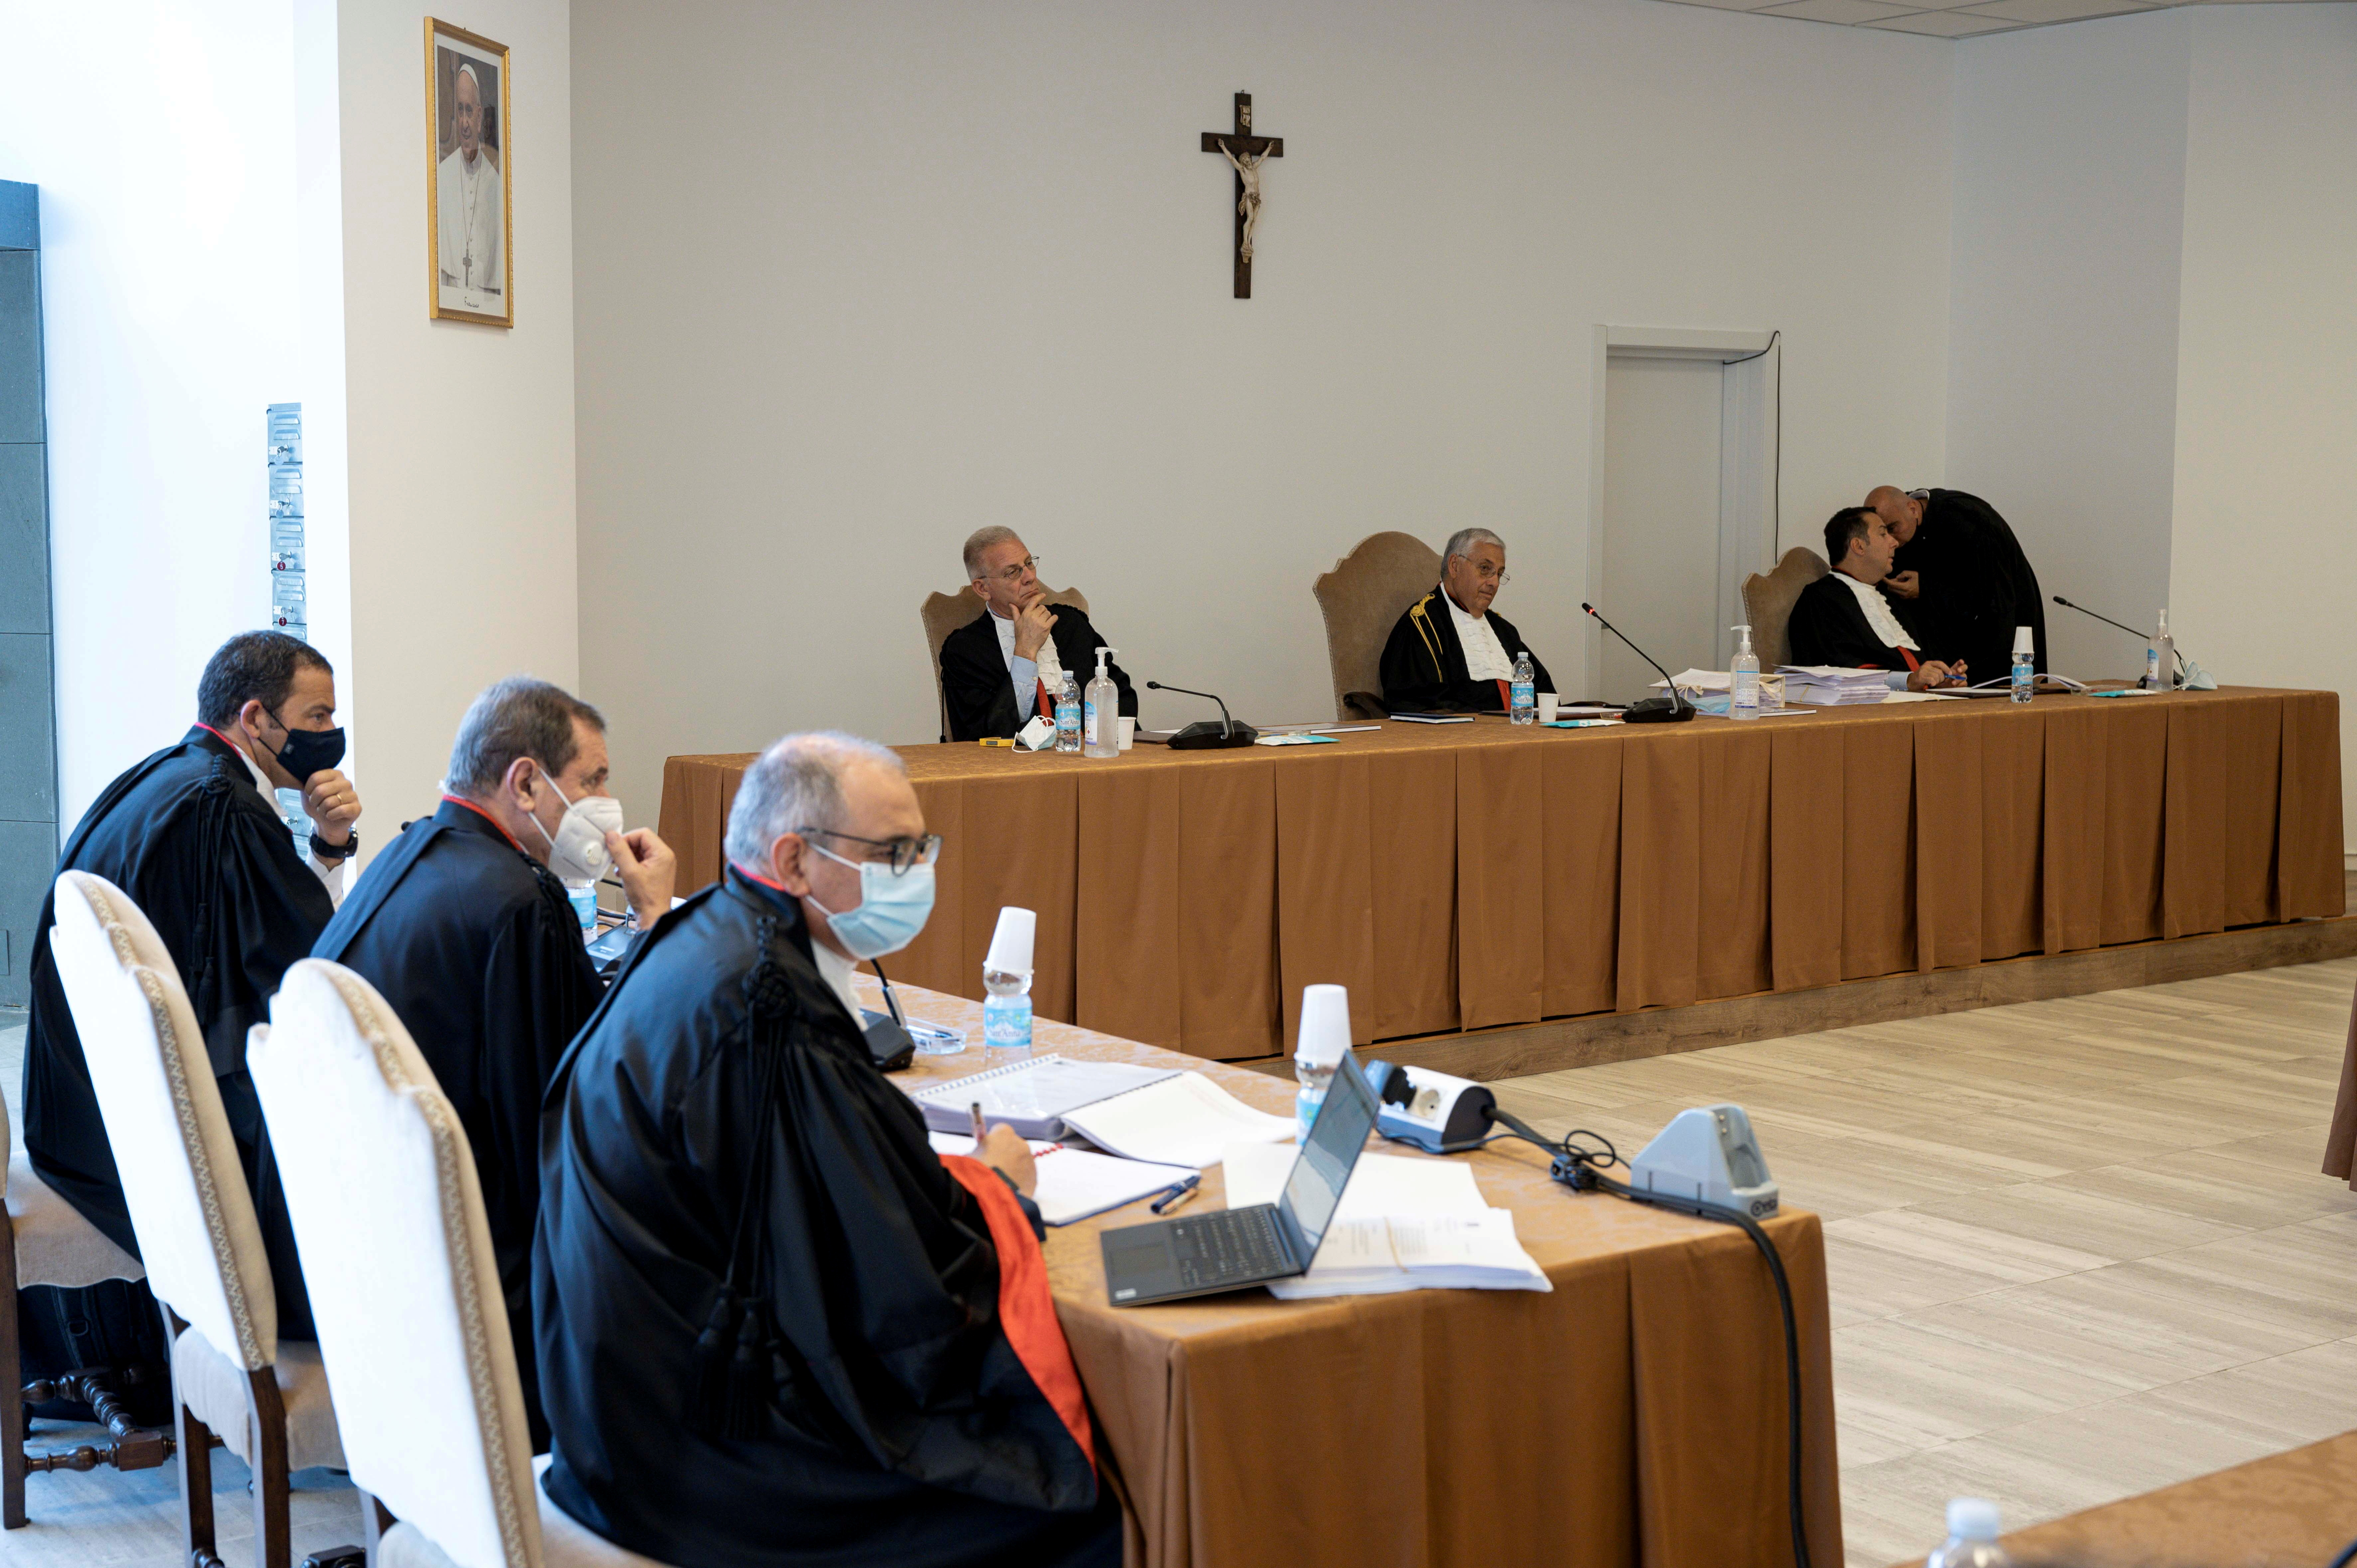 Trial begins at the Vatican for 10 people, including prominent Italian cardinal Angelo Becciu, who are charged with financial crimes including embezzlement, money laundering, fraud, extortion and abuse of office, at the Vatican, July 27, 2021. Vatican Media/Handout via REUTERS